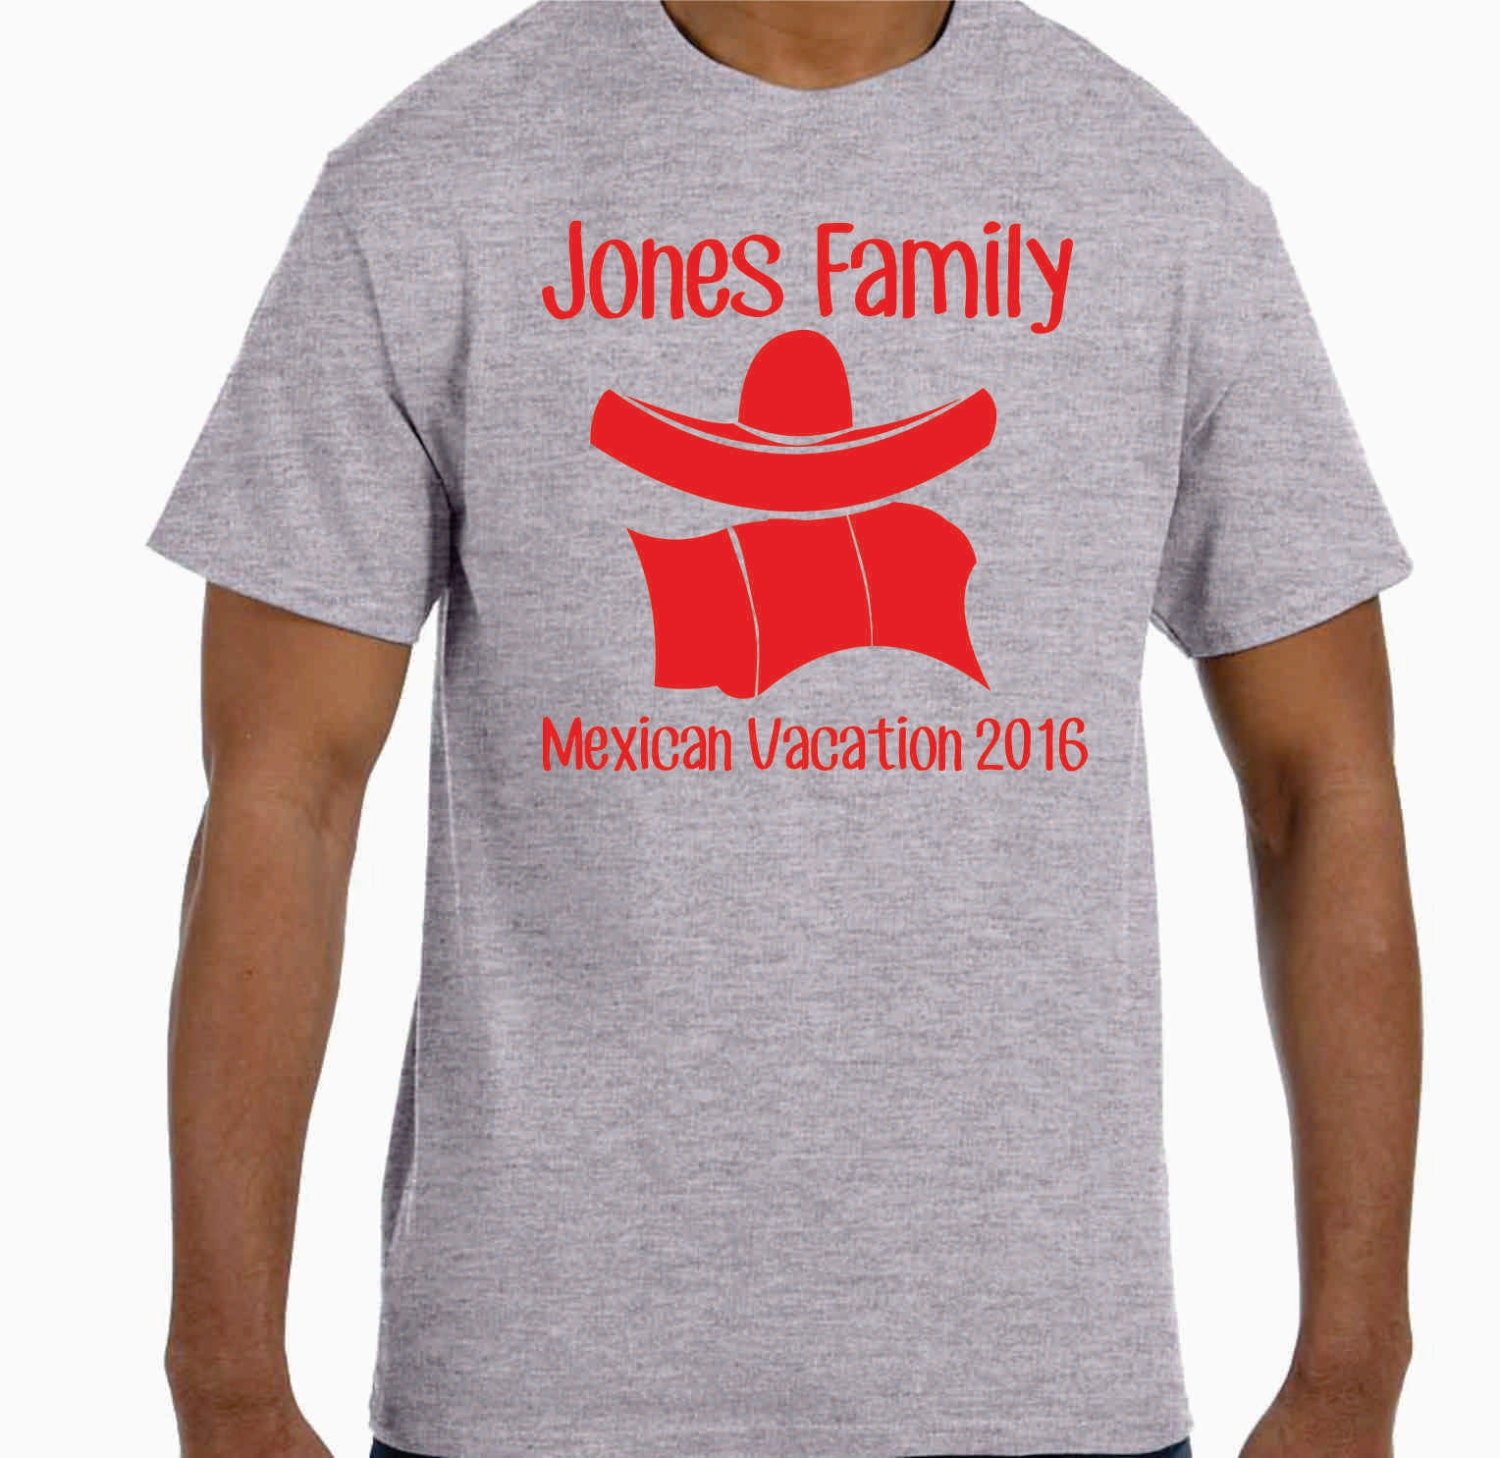 Lot of 10 personalized mexican family vacation t shirts for Custom t shirts for family reunion